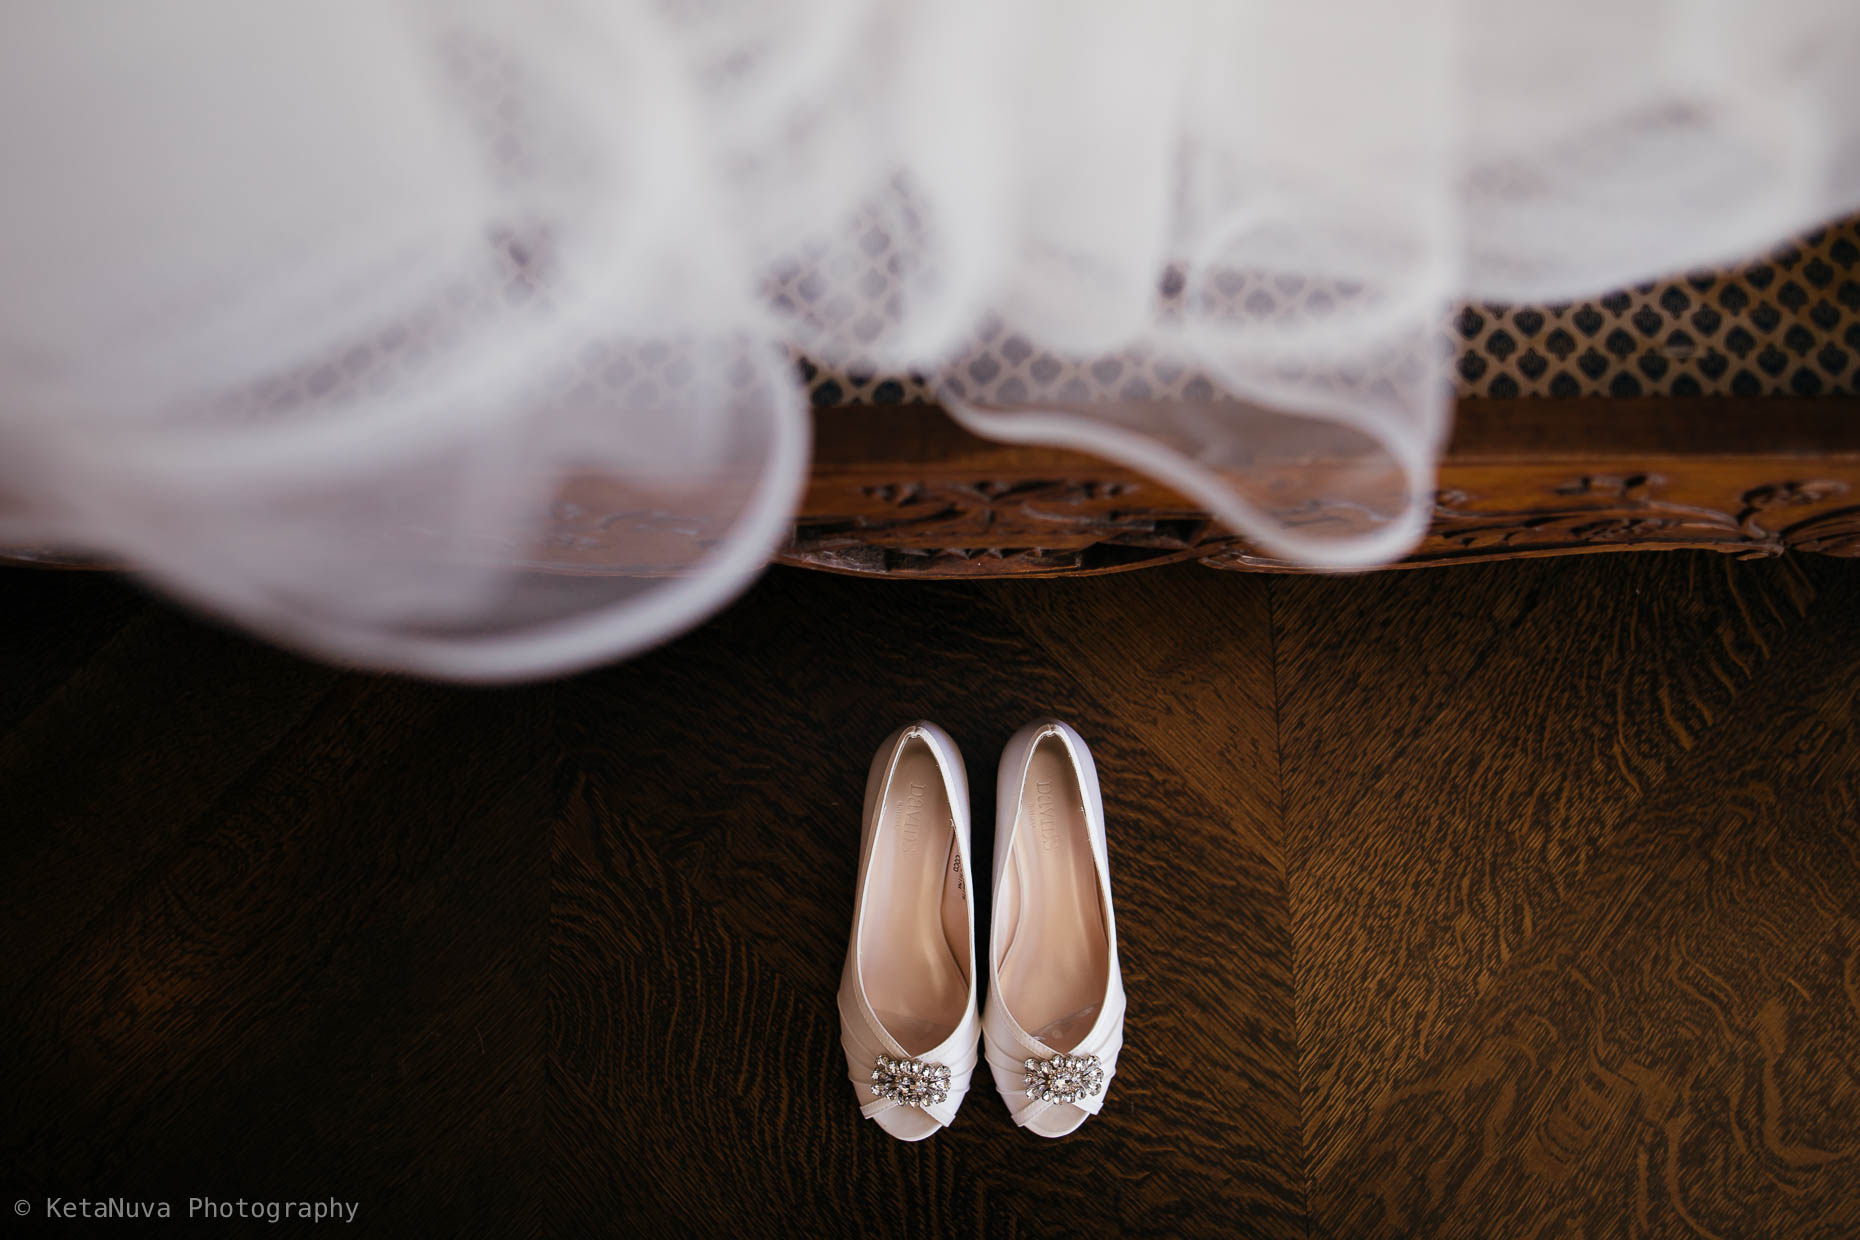 Creative picture of wedding shoes.